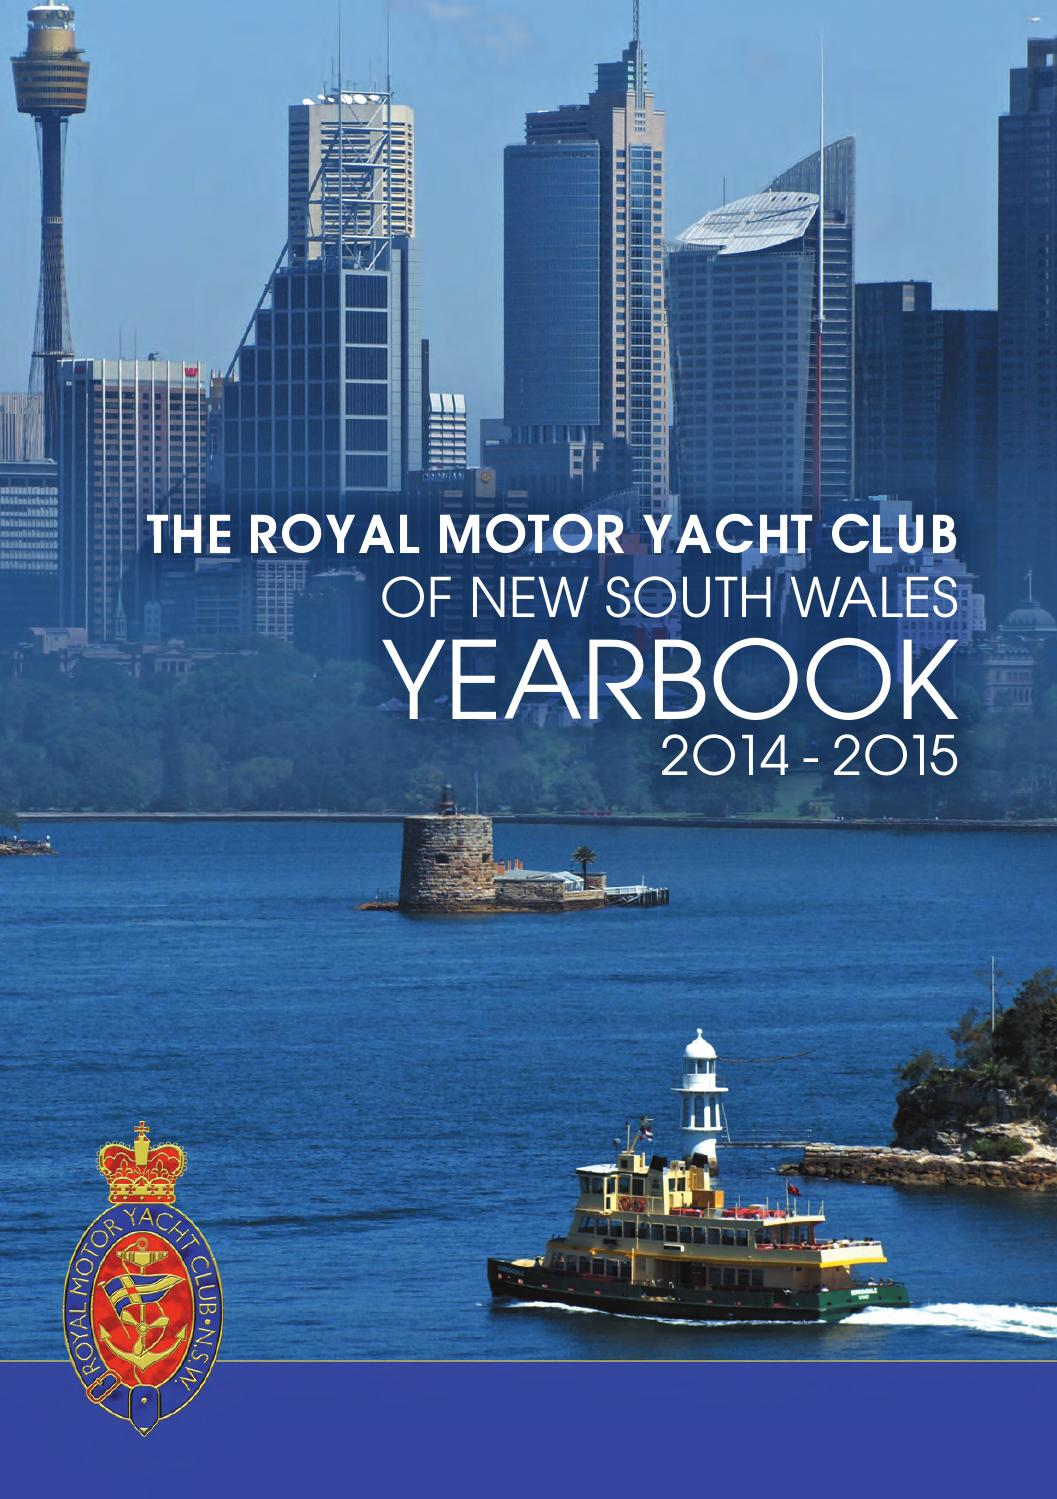 Royal Motor Yacht Club Of New South Wales Yearbook 2014 2015 By Executive Media Issuu